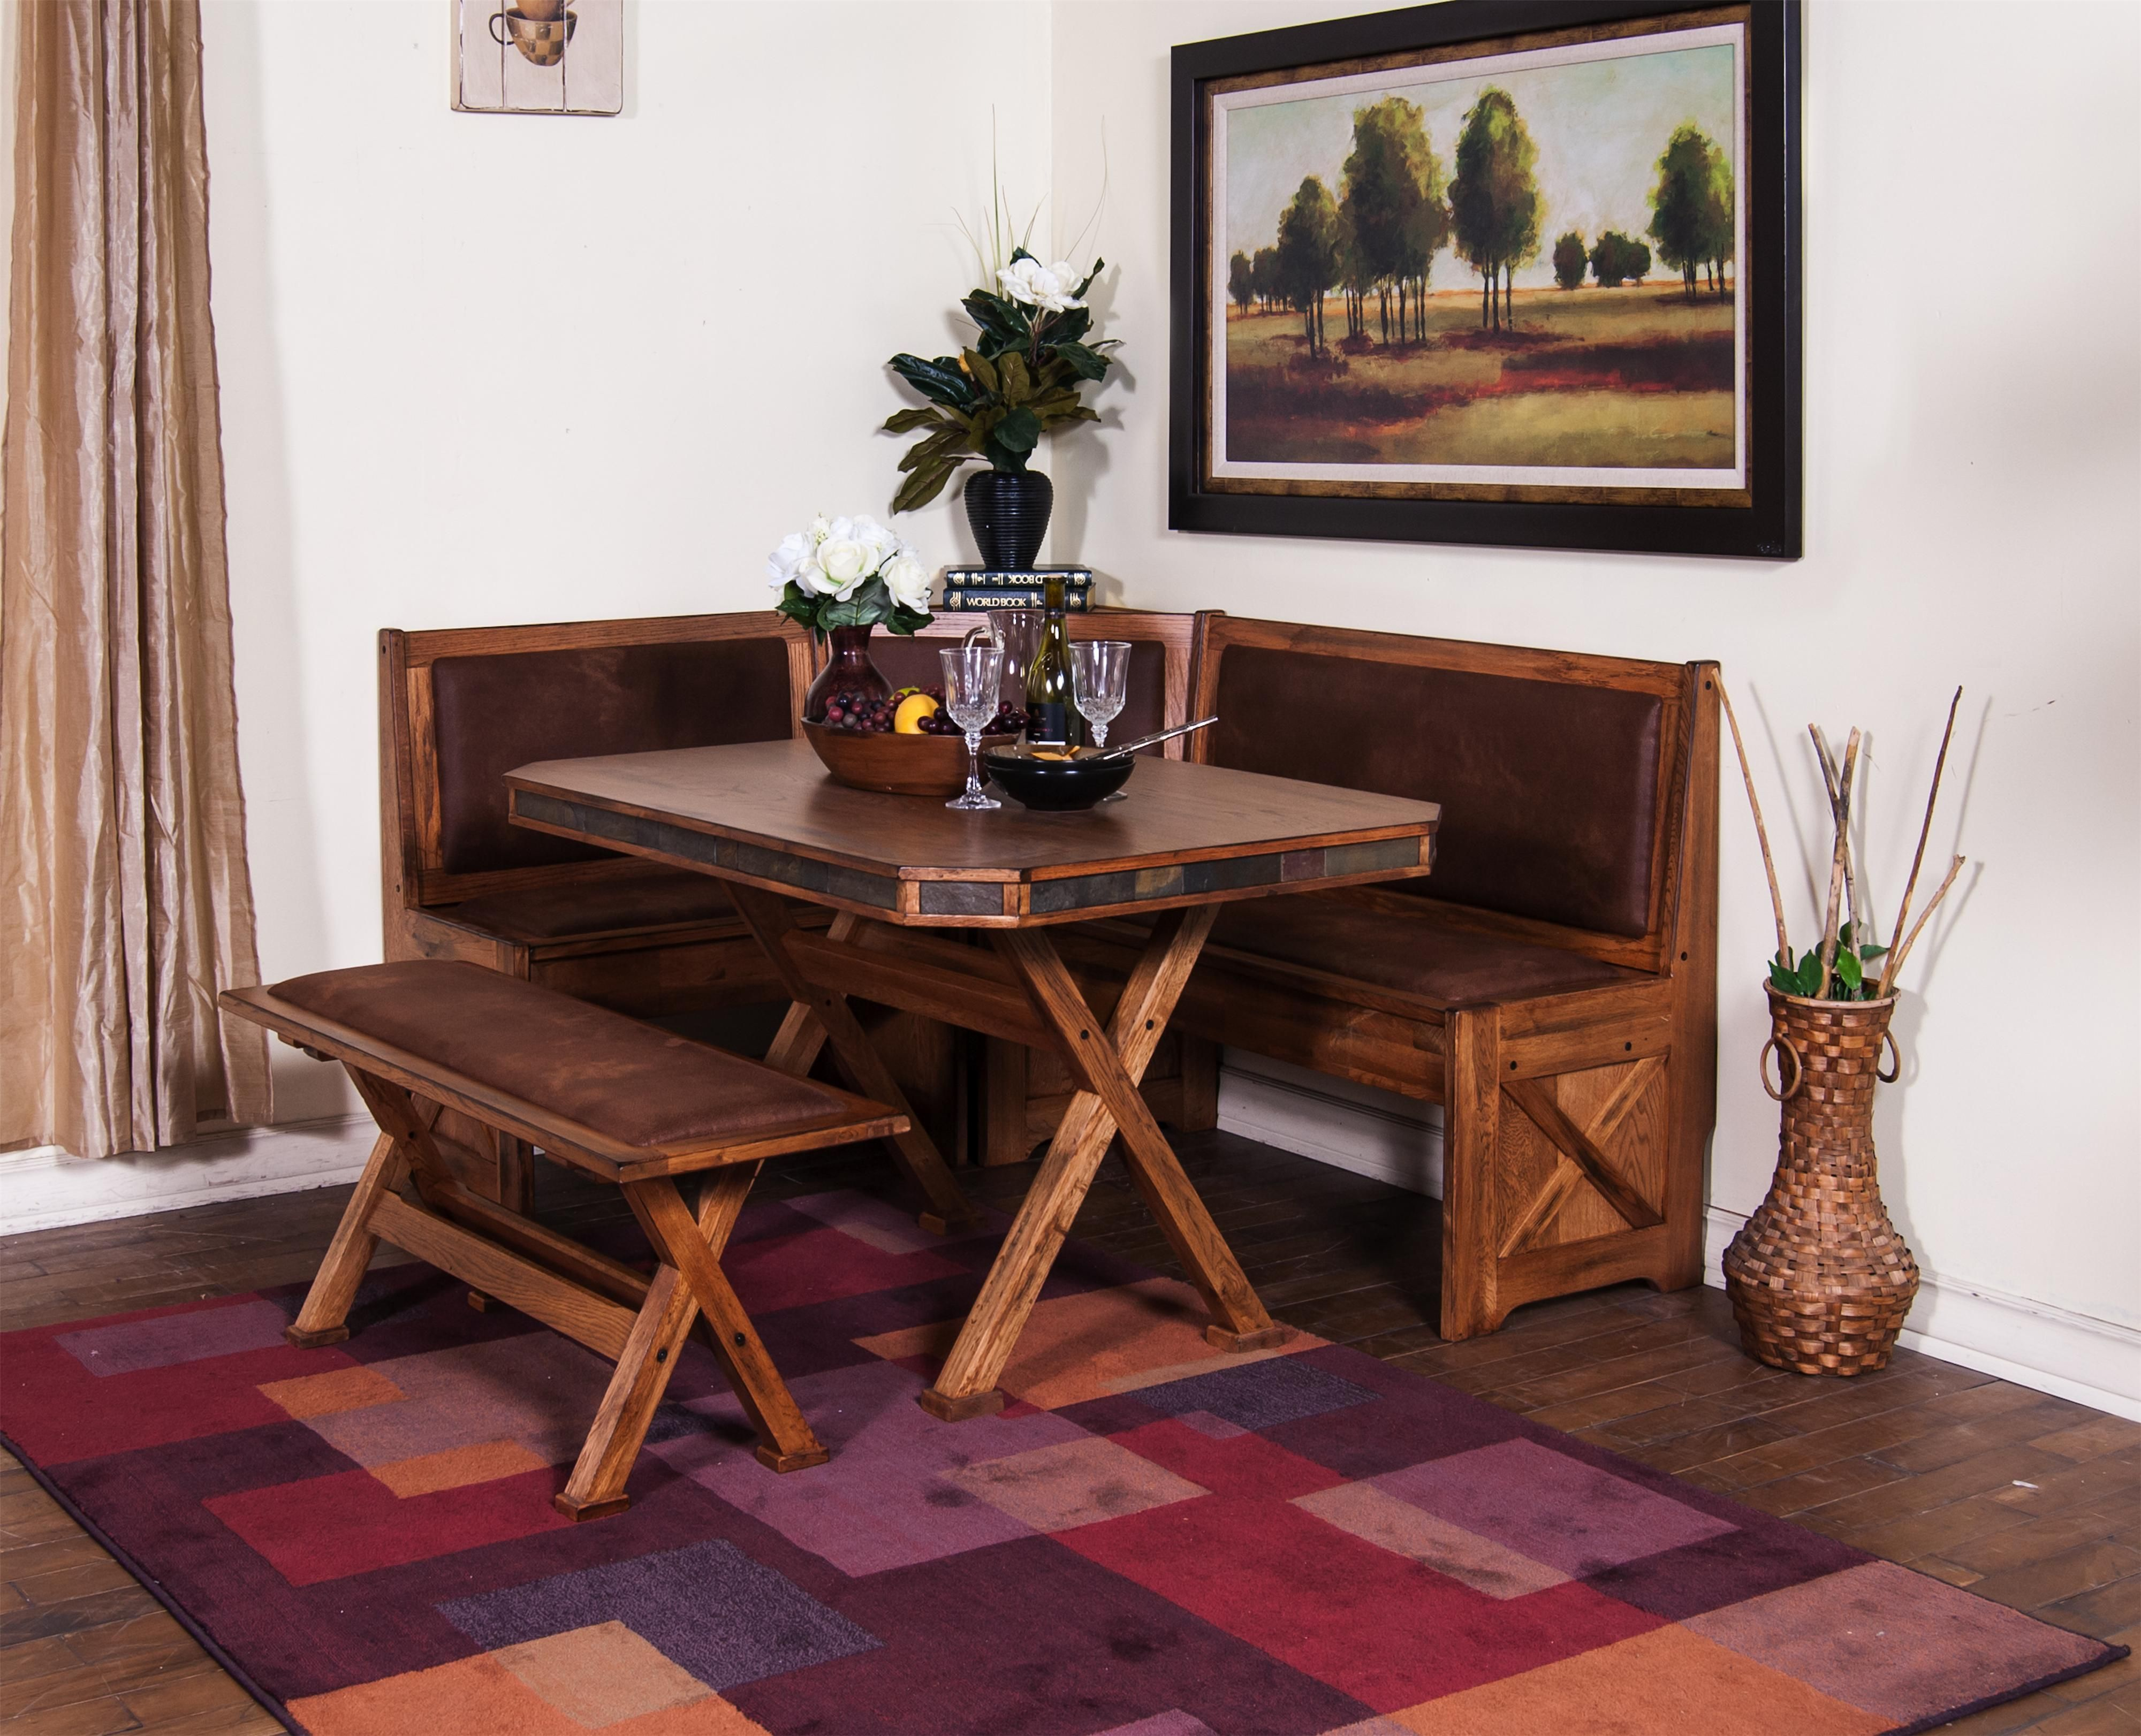 Dining room table with upholstered bench  From Morris Home Furnishings  Oxton Breakfast Nook Set with